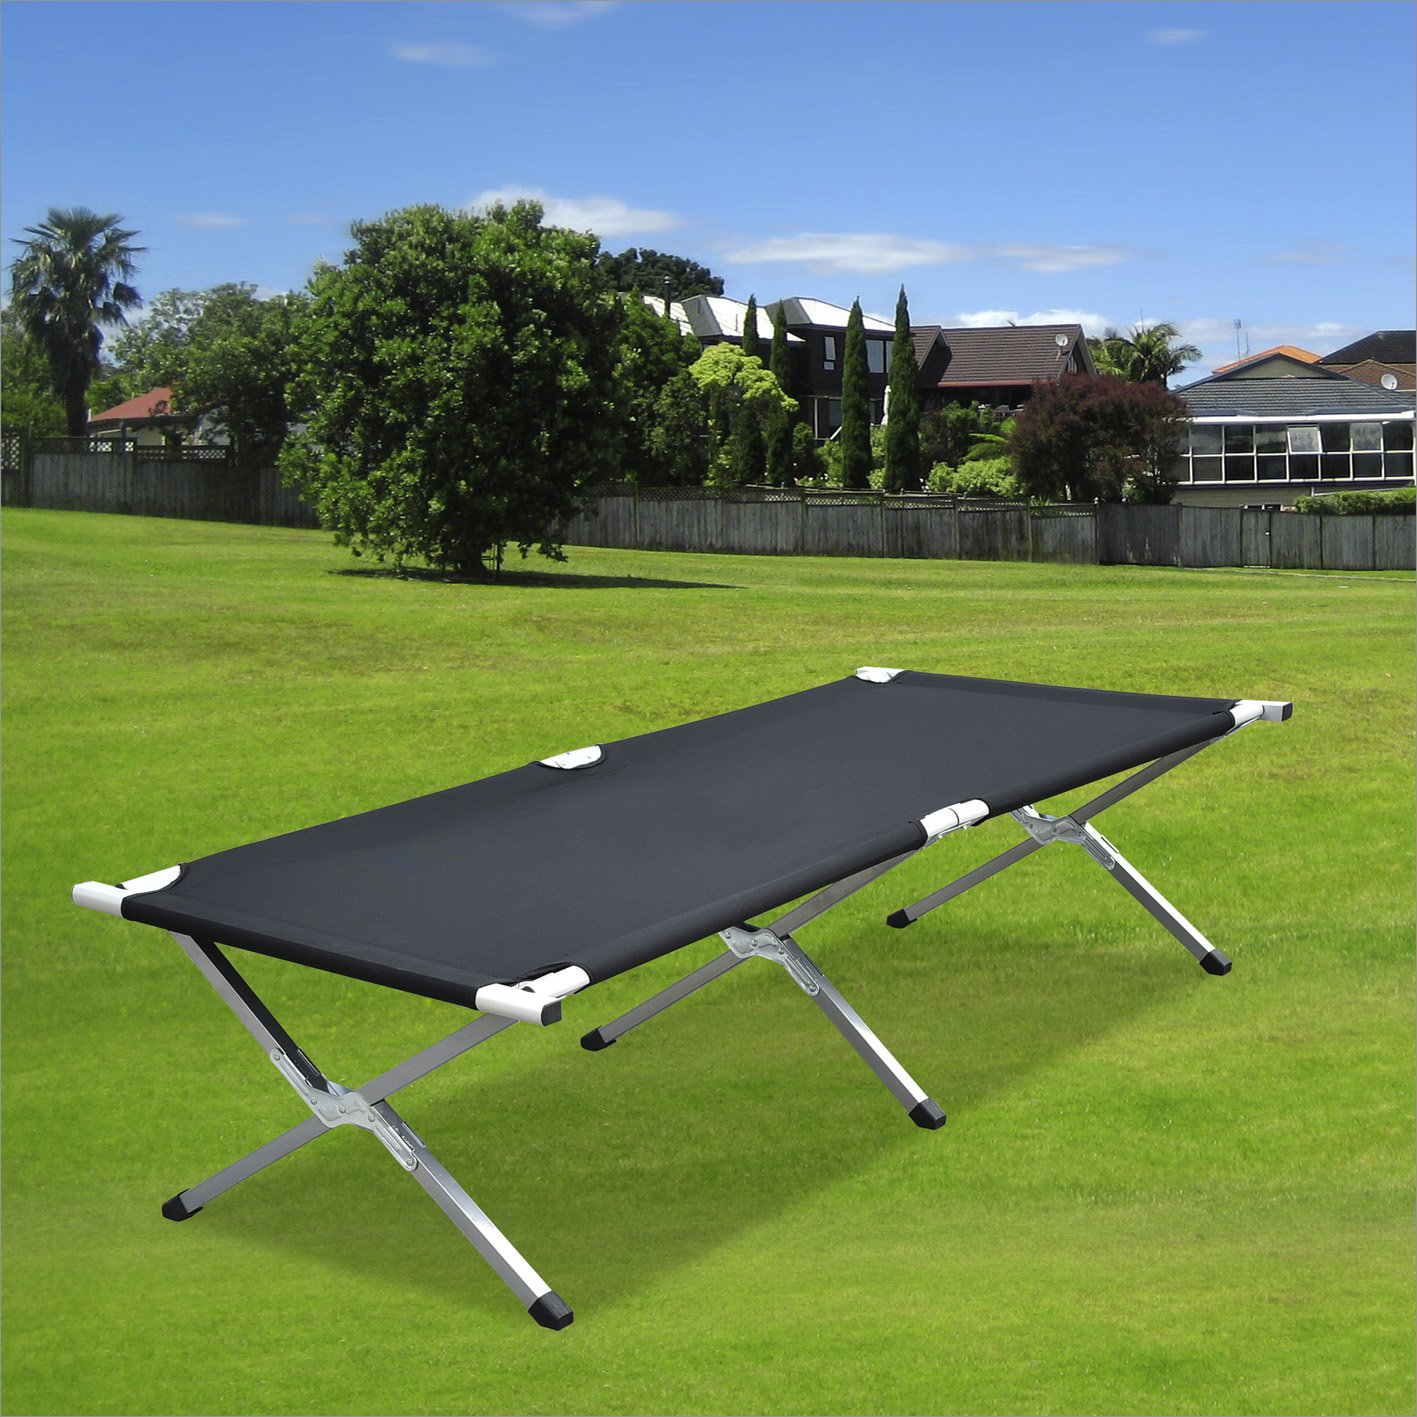 Purenity Folding Military Bed Portable Sport Camping Cot